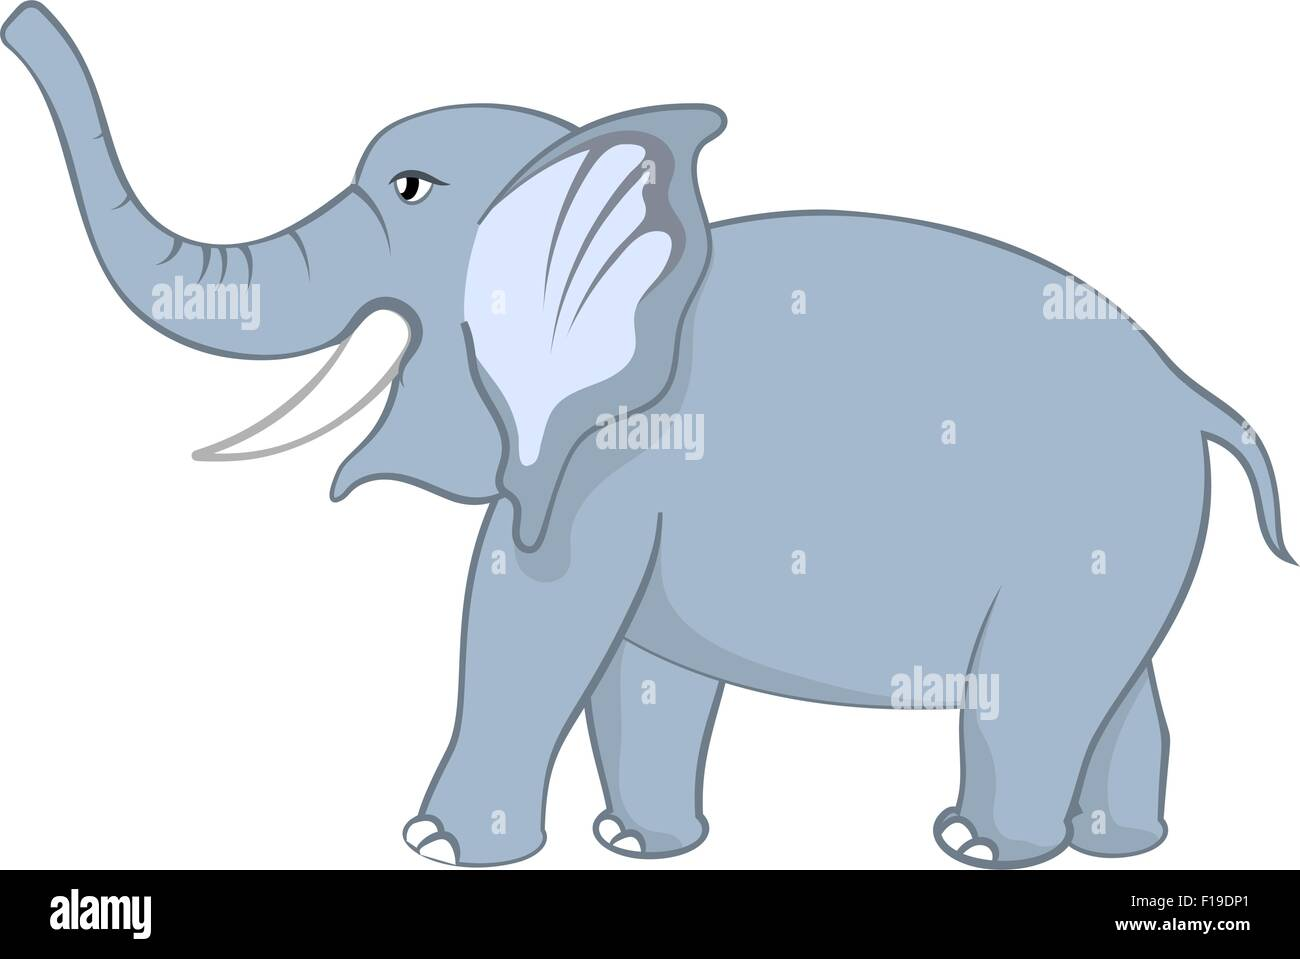 funny cartoon character elephant with smile and raised trunk over